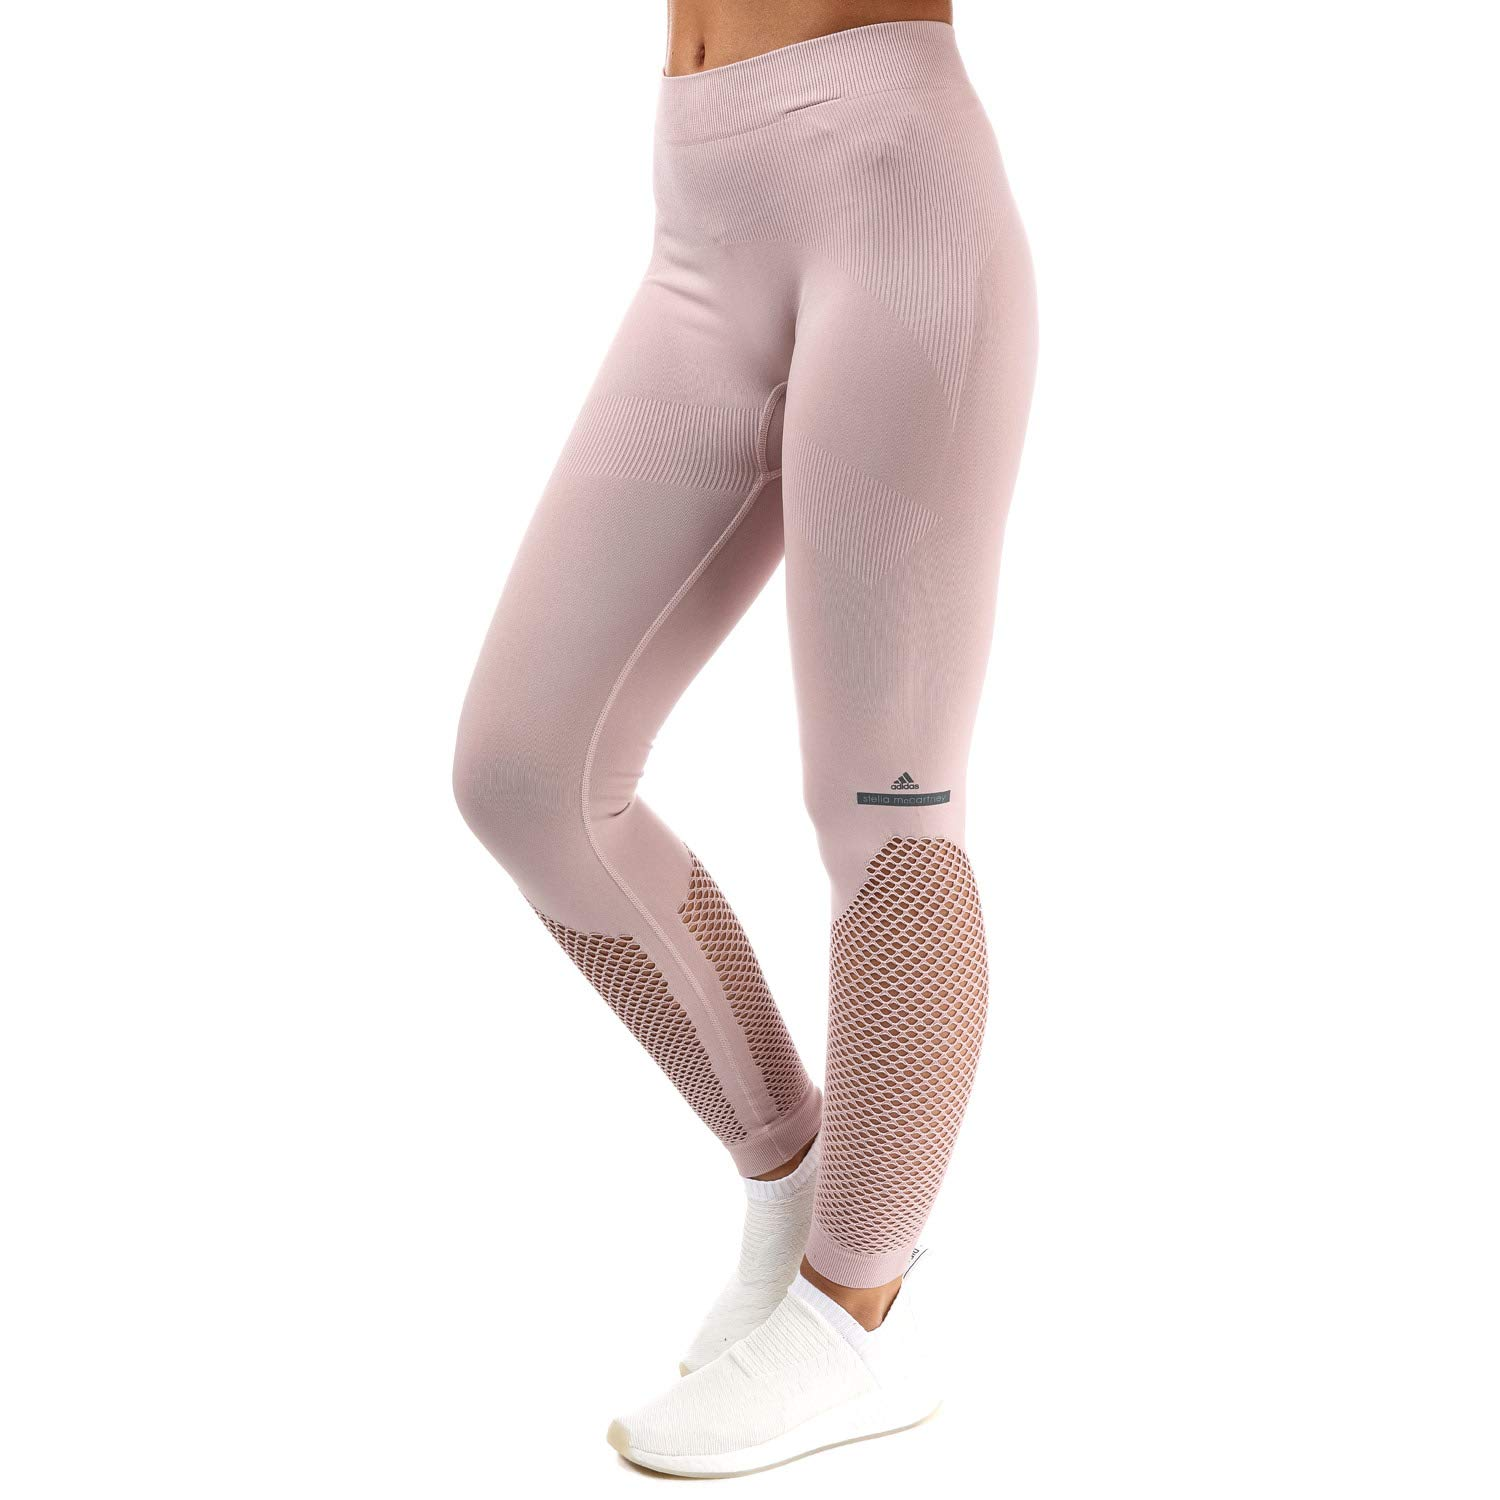 adidas tight by stella mccartney in mesh rosa größe uk